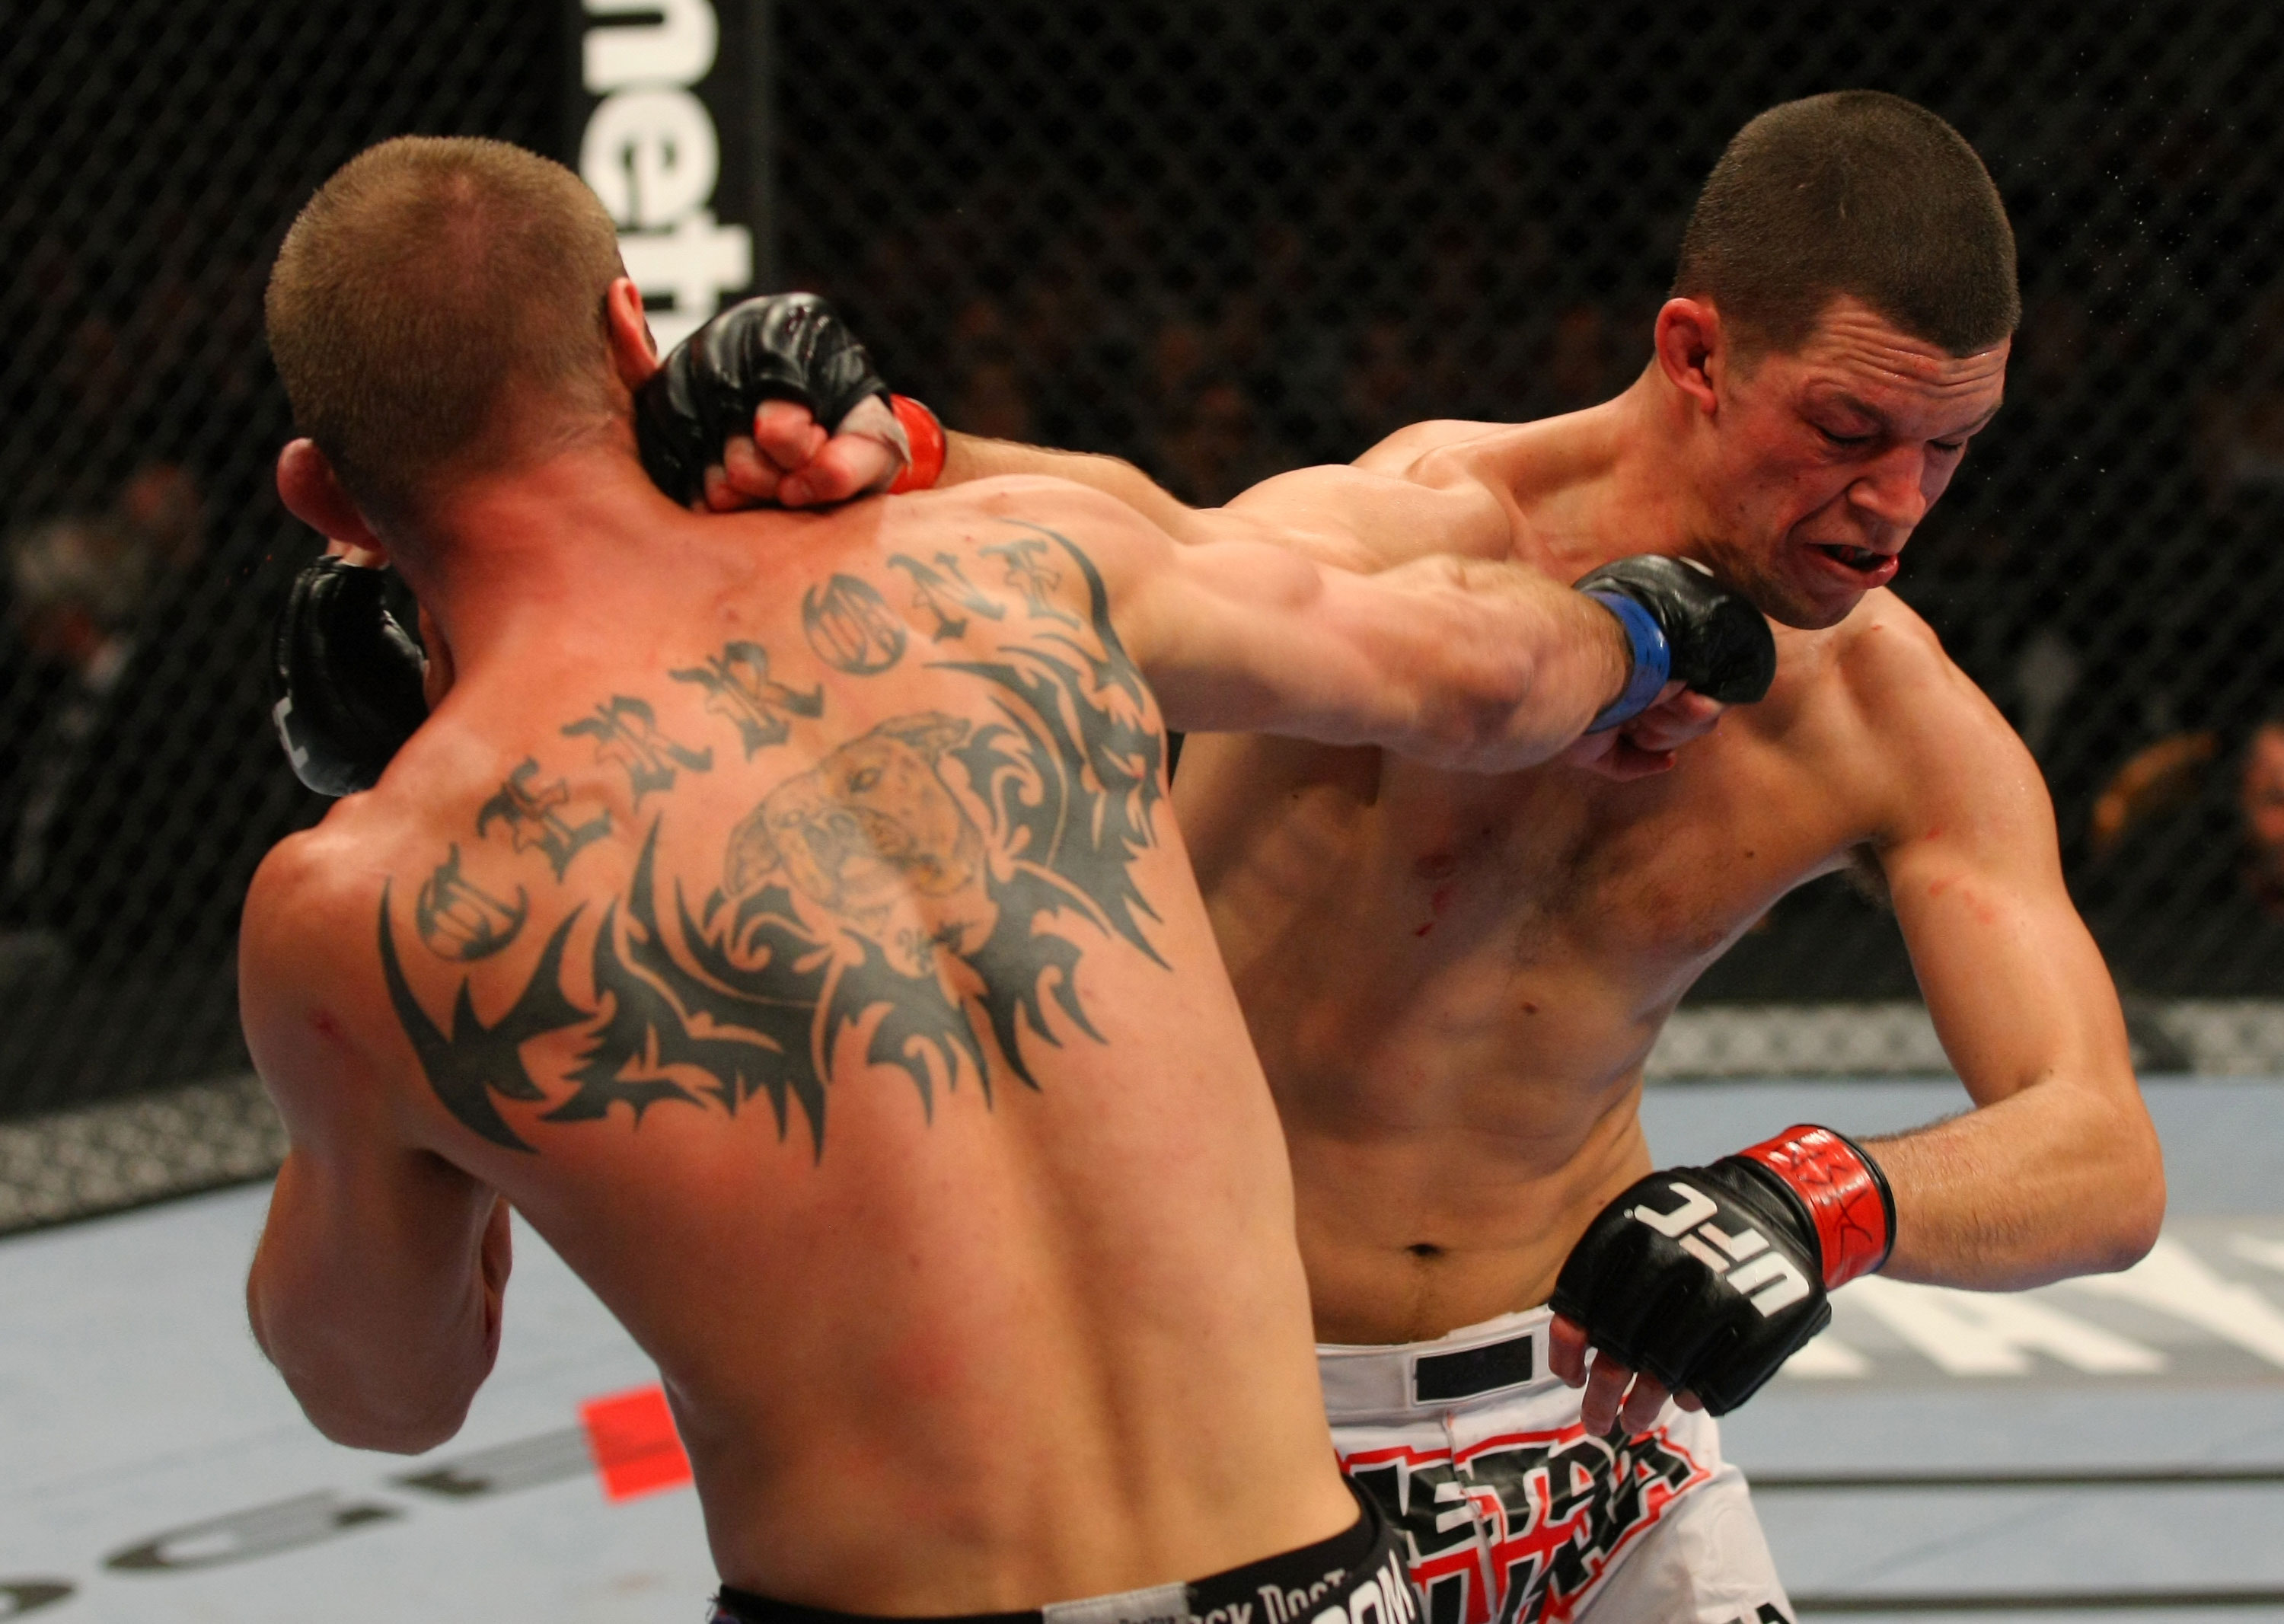 LAS VEGAS, NV - DECEMBER 30:  Donald Cerrone (left) and Nate Diaz (right) exchange blows during the UFC 141 event at the MGM Grand Garden Arena on December 30, 2011 in Las Vegas, Nevada.  (Photo by Donald Miralle/Zuffa LLC/Zuffa LLC via Getty Images) *** Local Caption *** Donald Cerrone; Nate Diaz